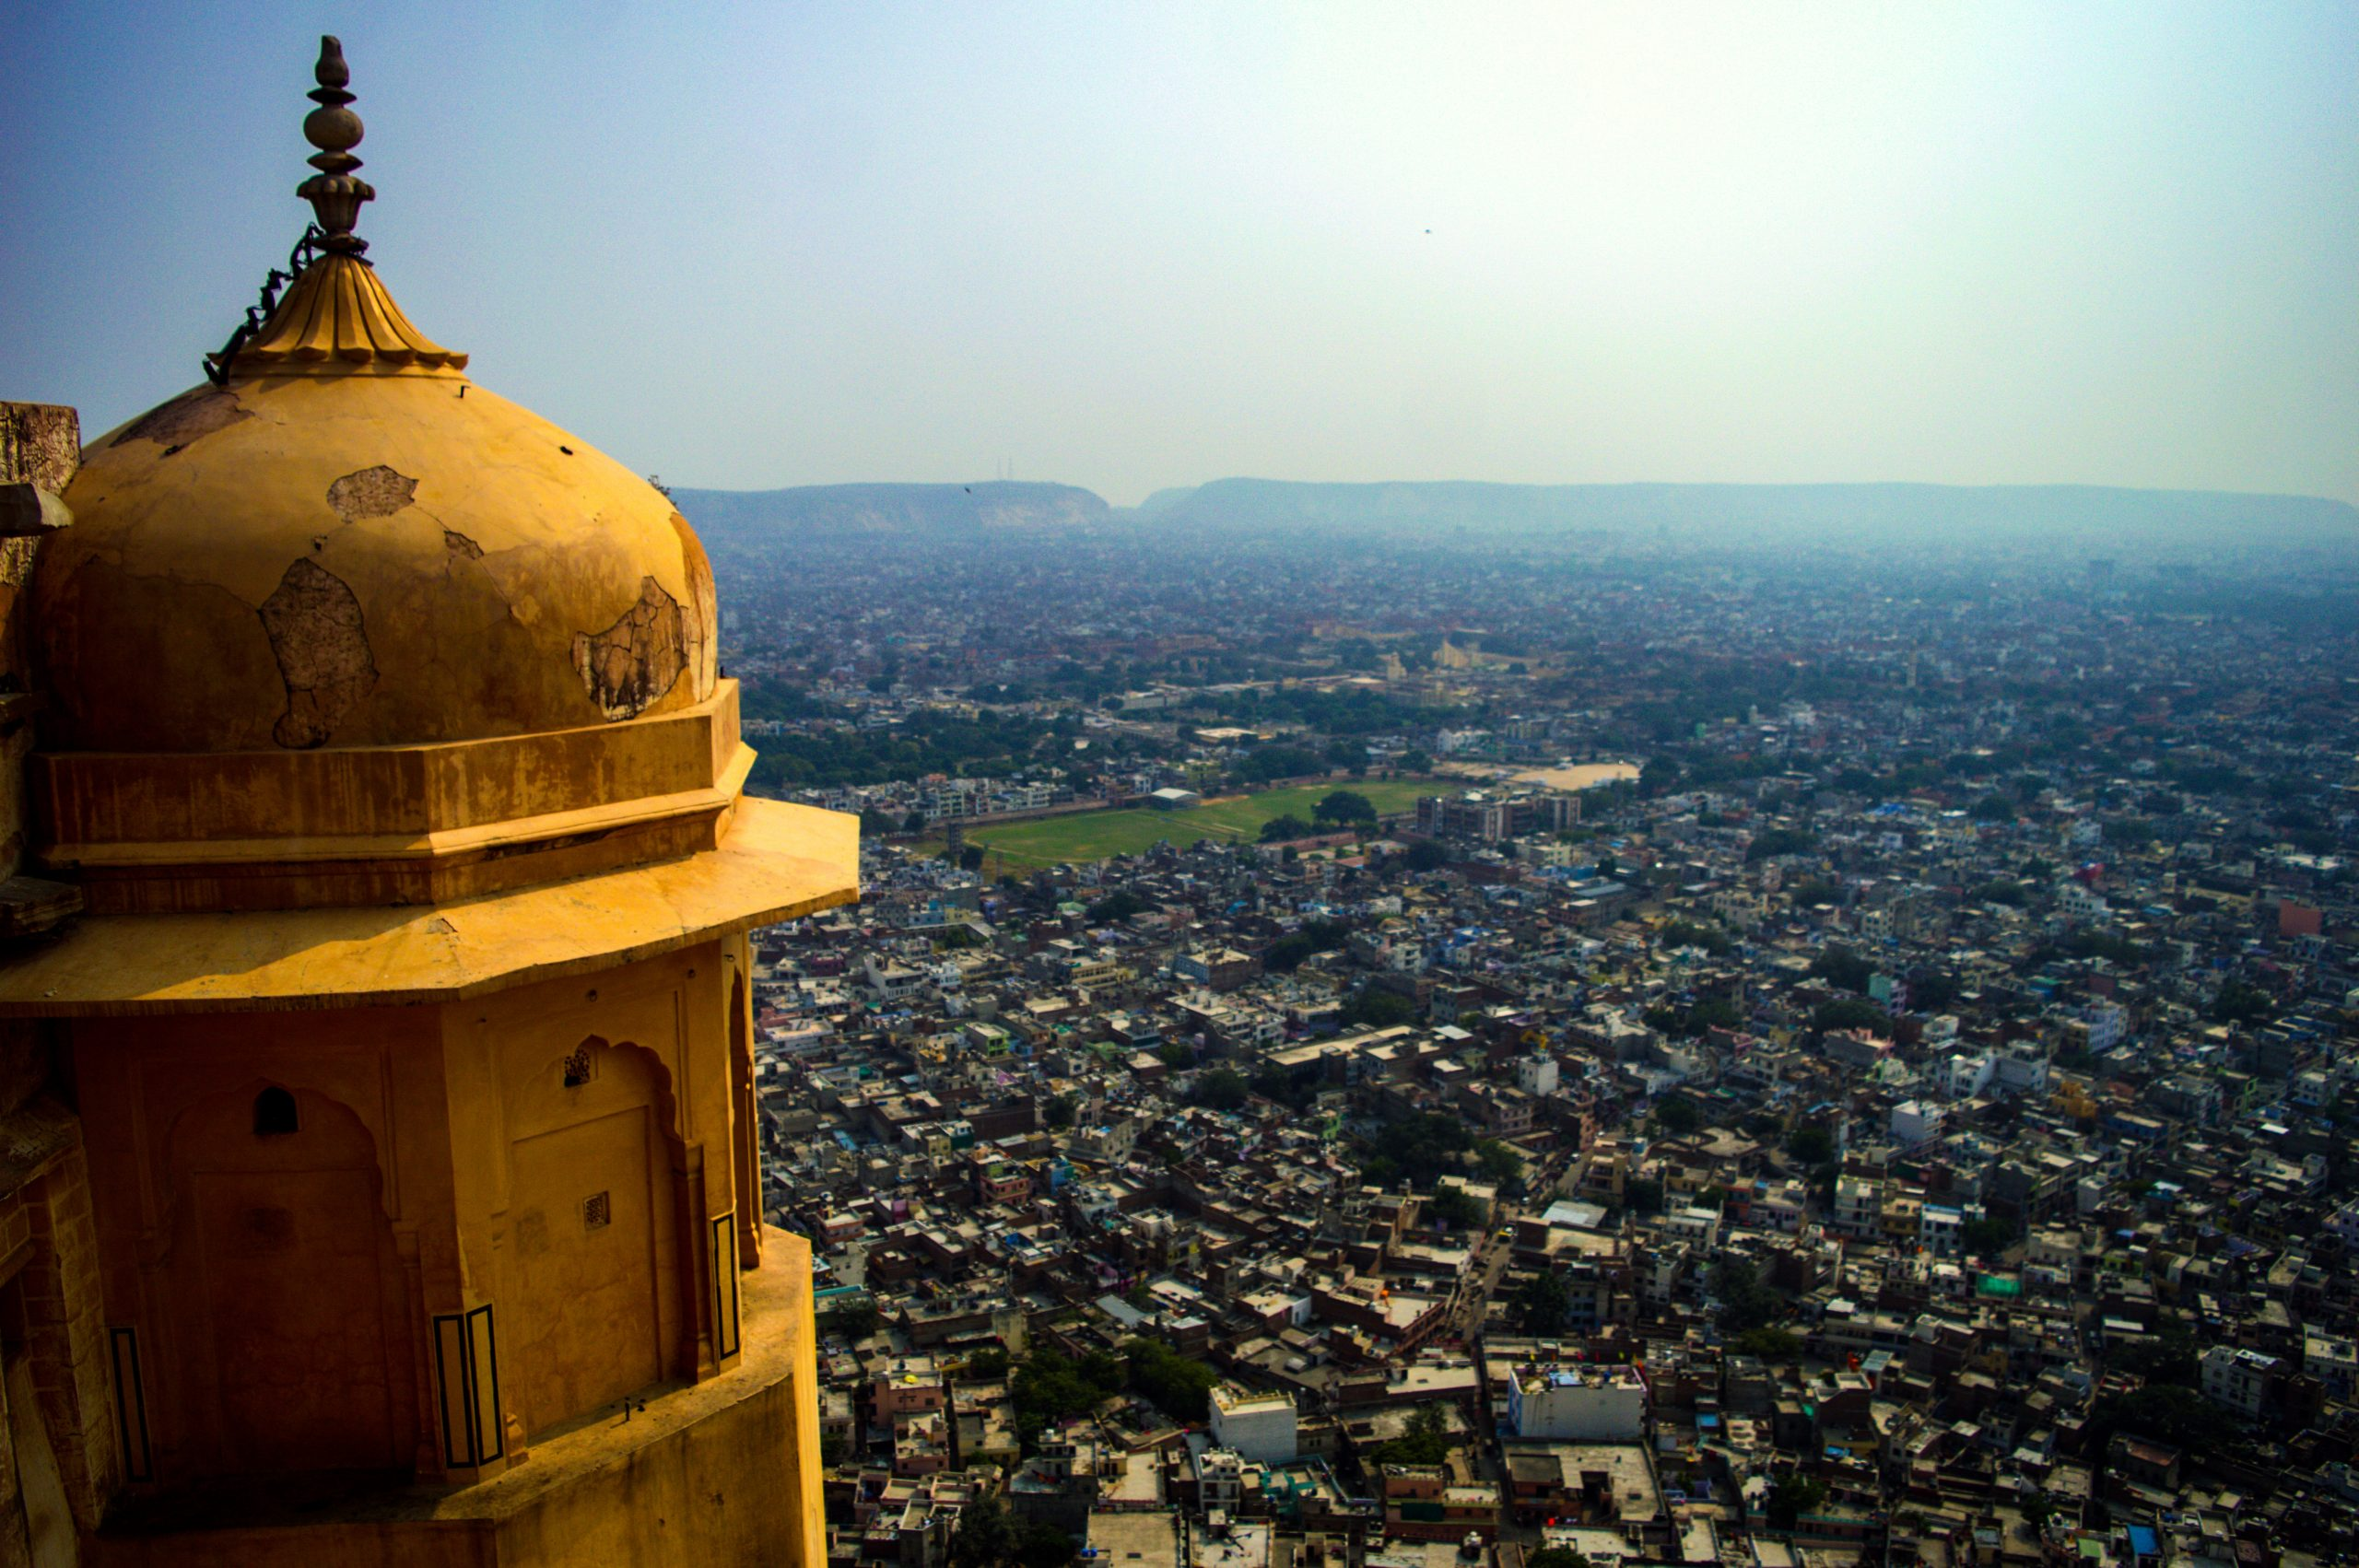 View from Nahargarh fort in Rajasthan